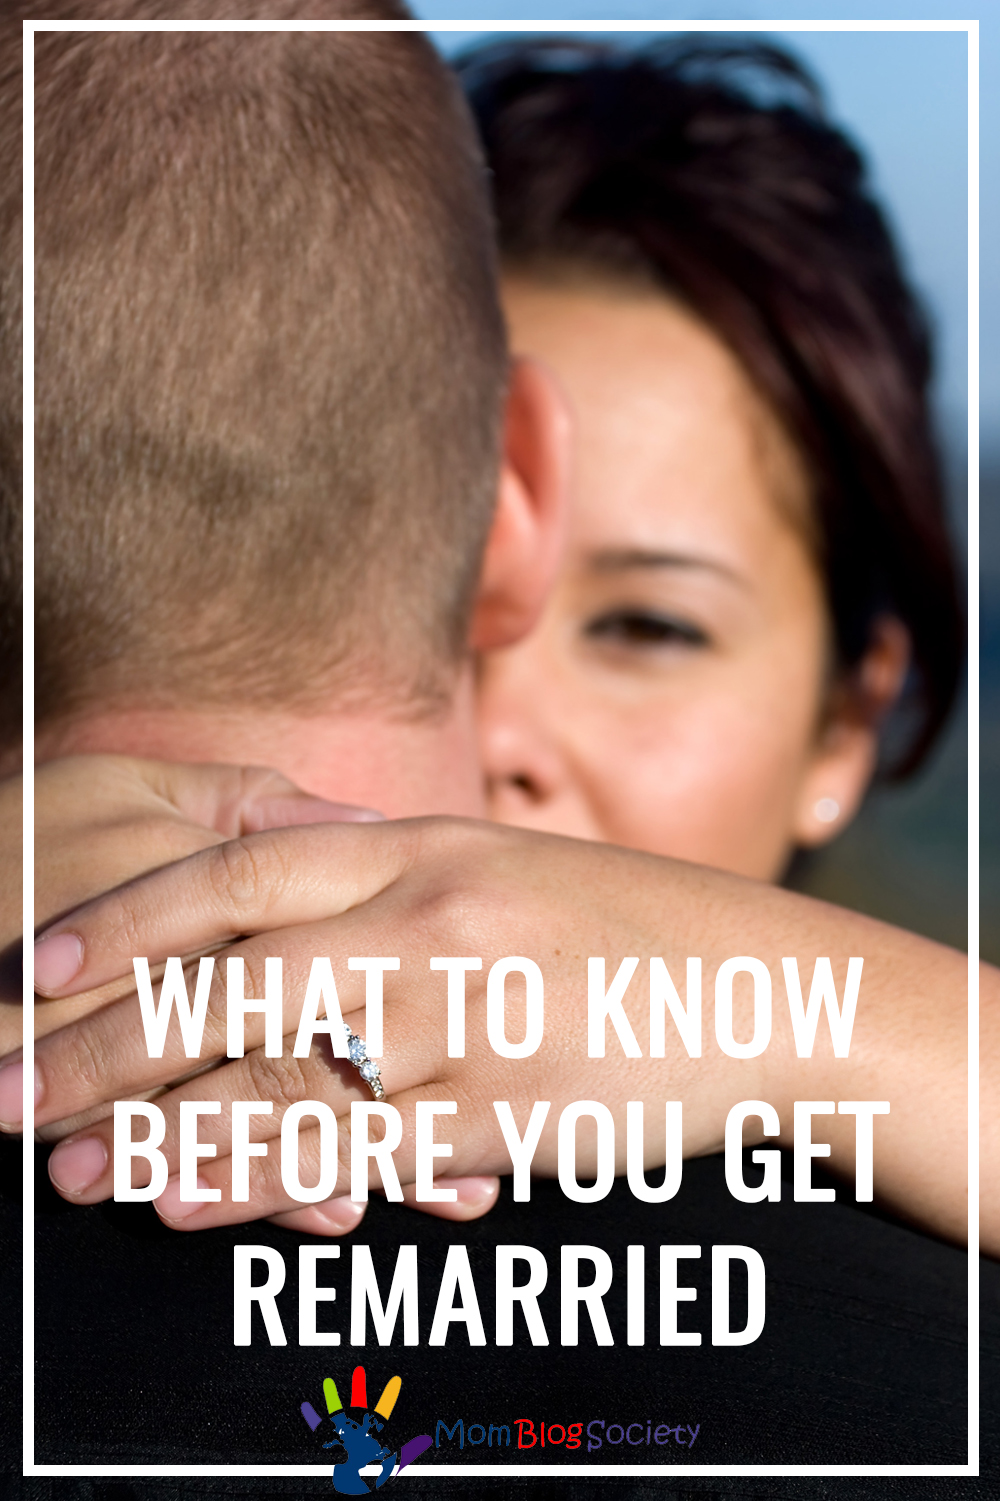 What to Know Before You Get Remarried